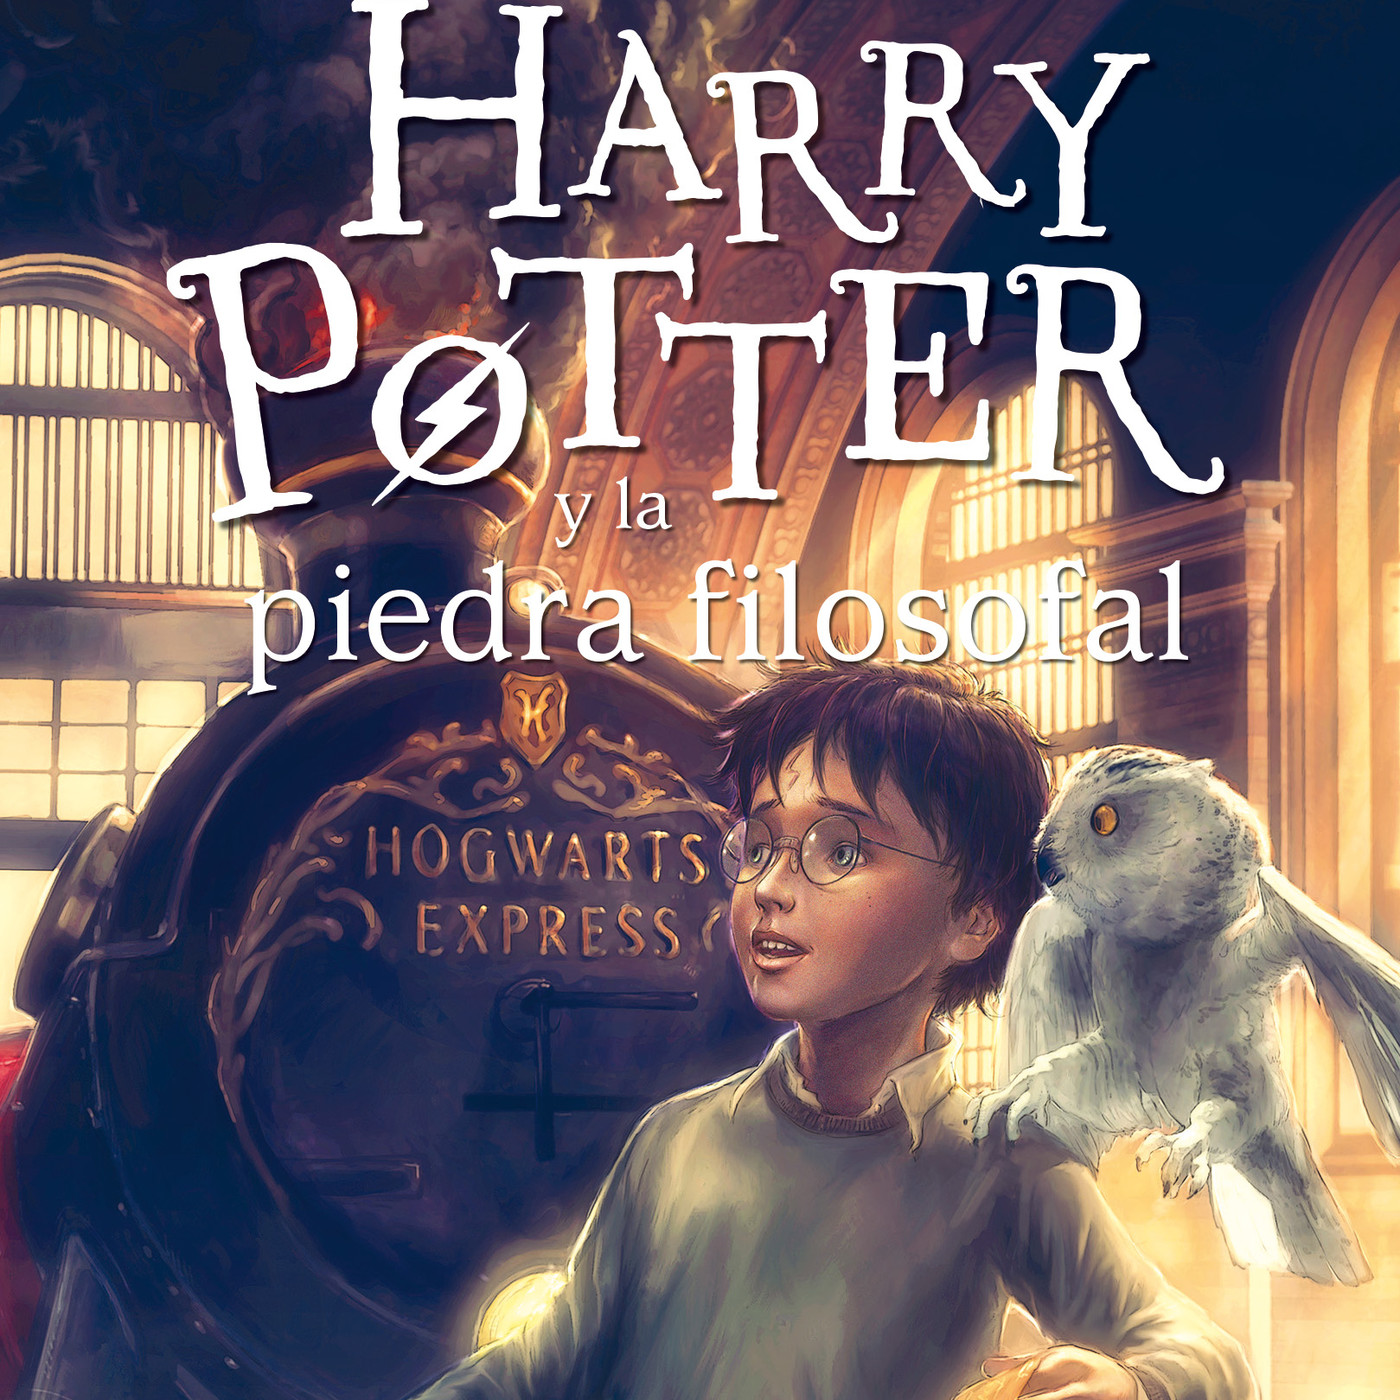 Harry Potter Libro 1 Audiolibro Harry Potter Y La Piedra Filosofal Parte 1